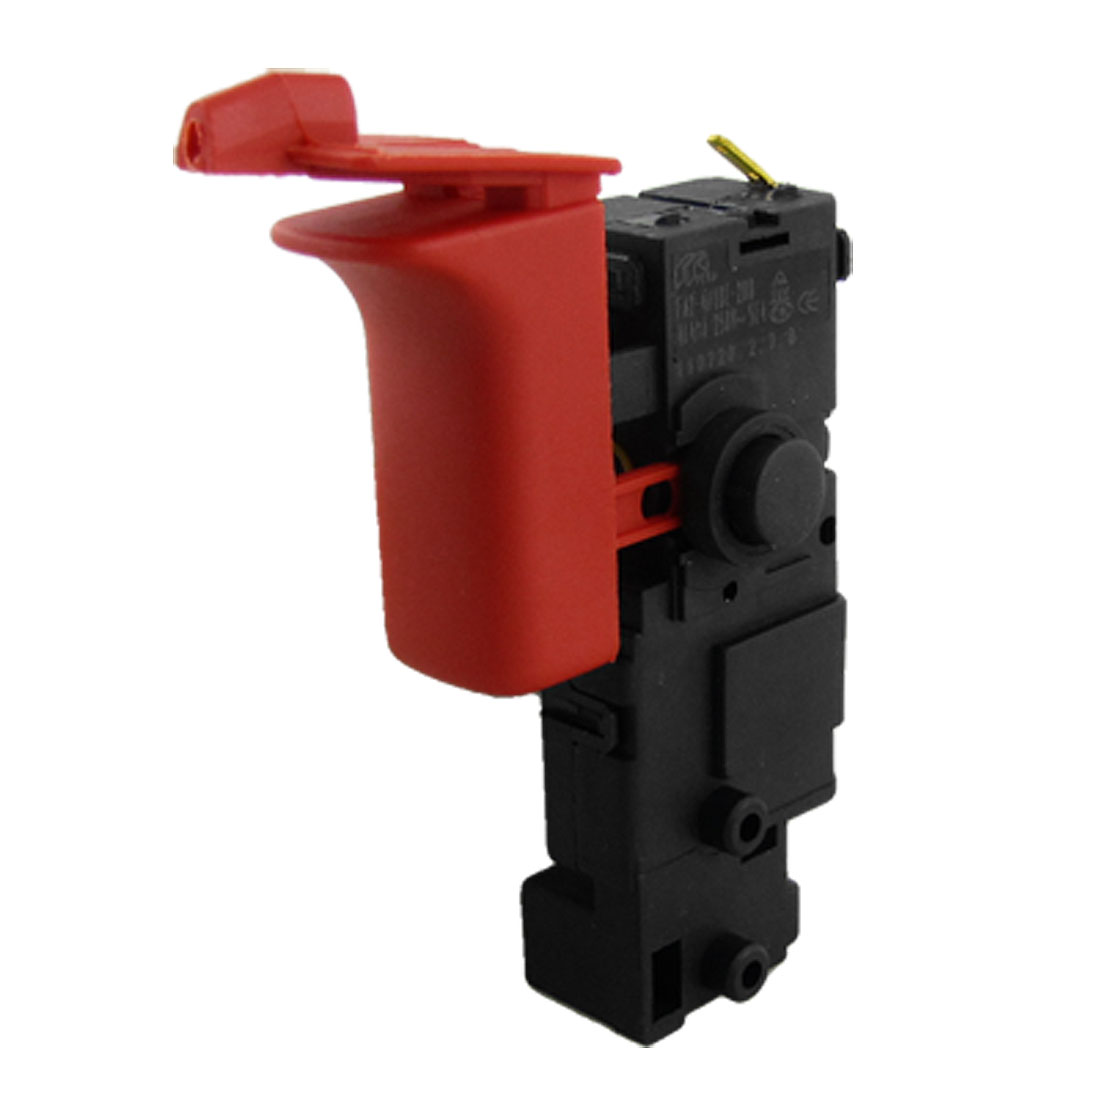 AC 250V Electrical Trigger Switch for Bosch GBH2-26